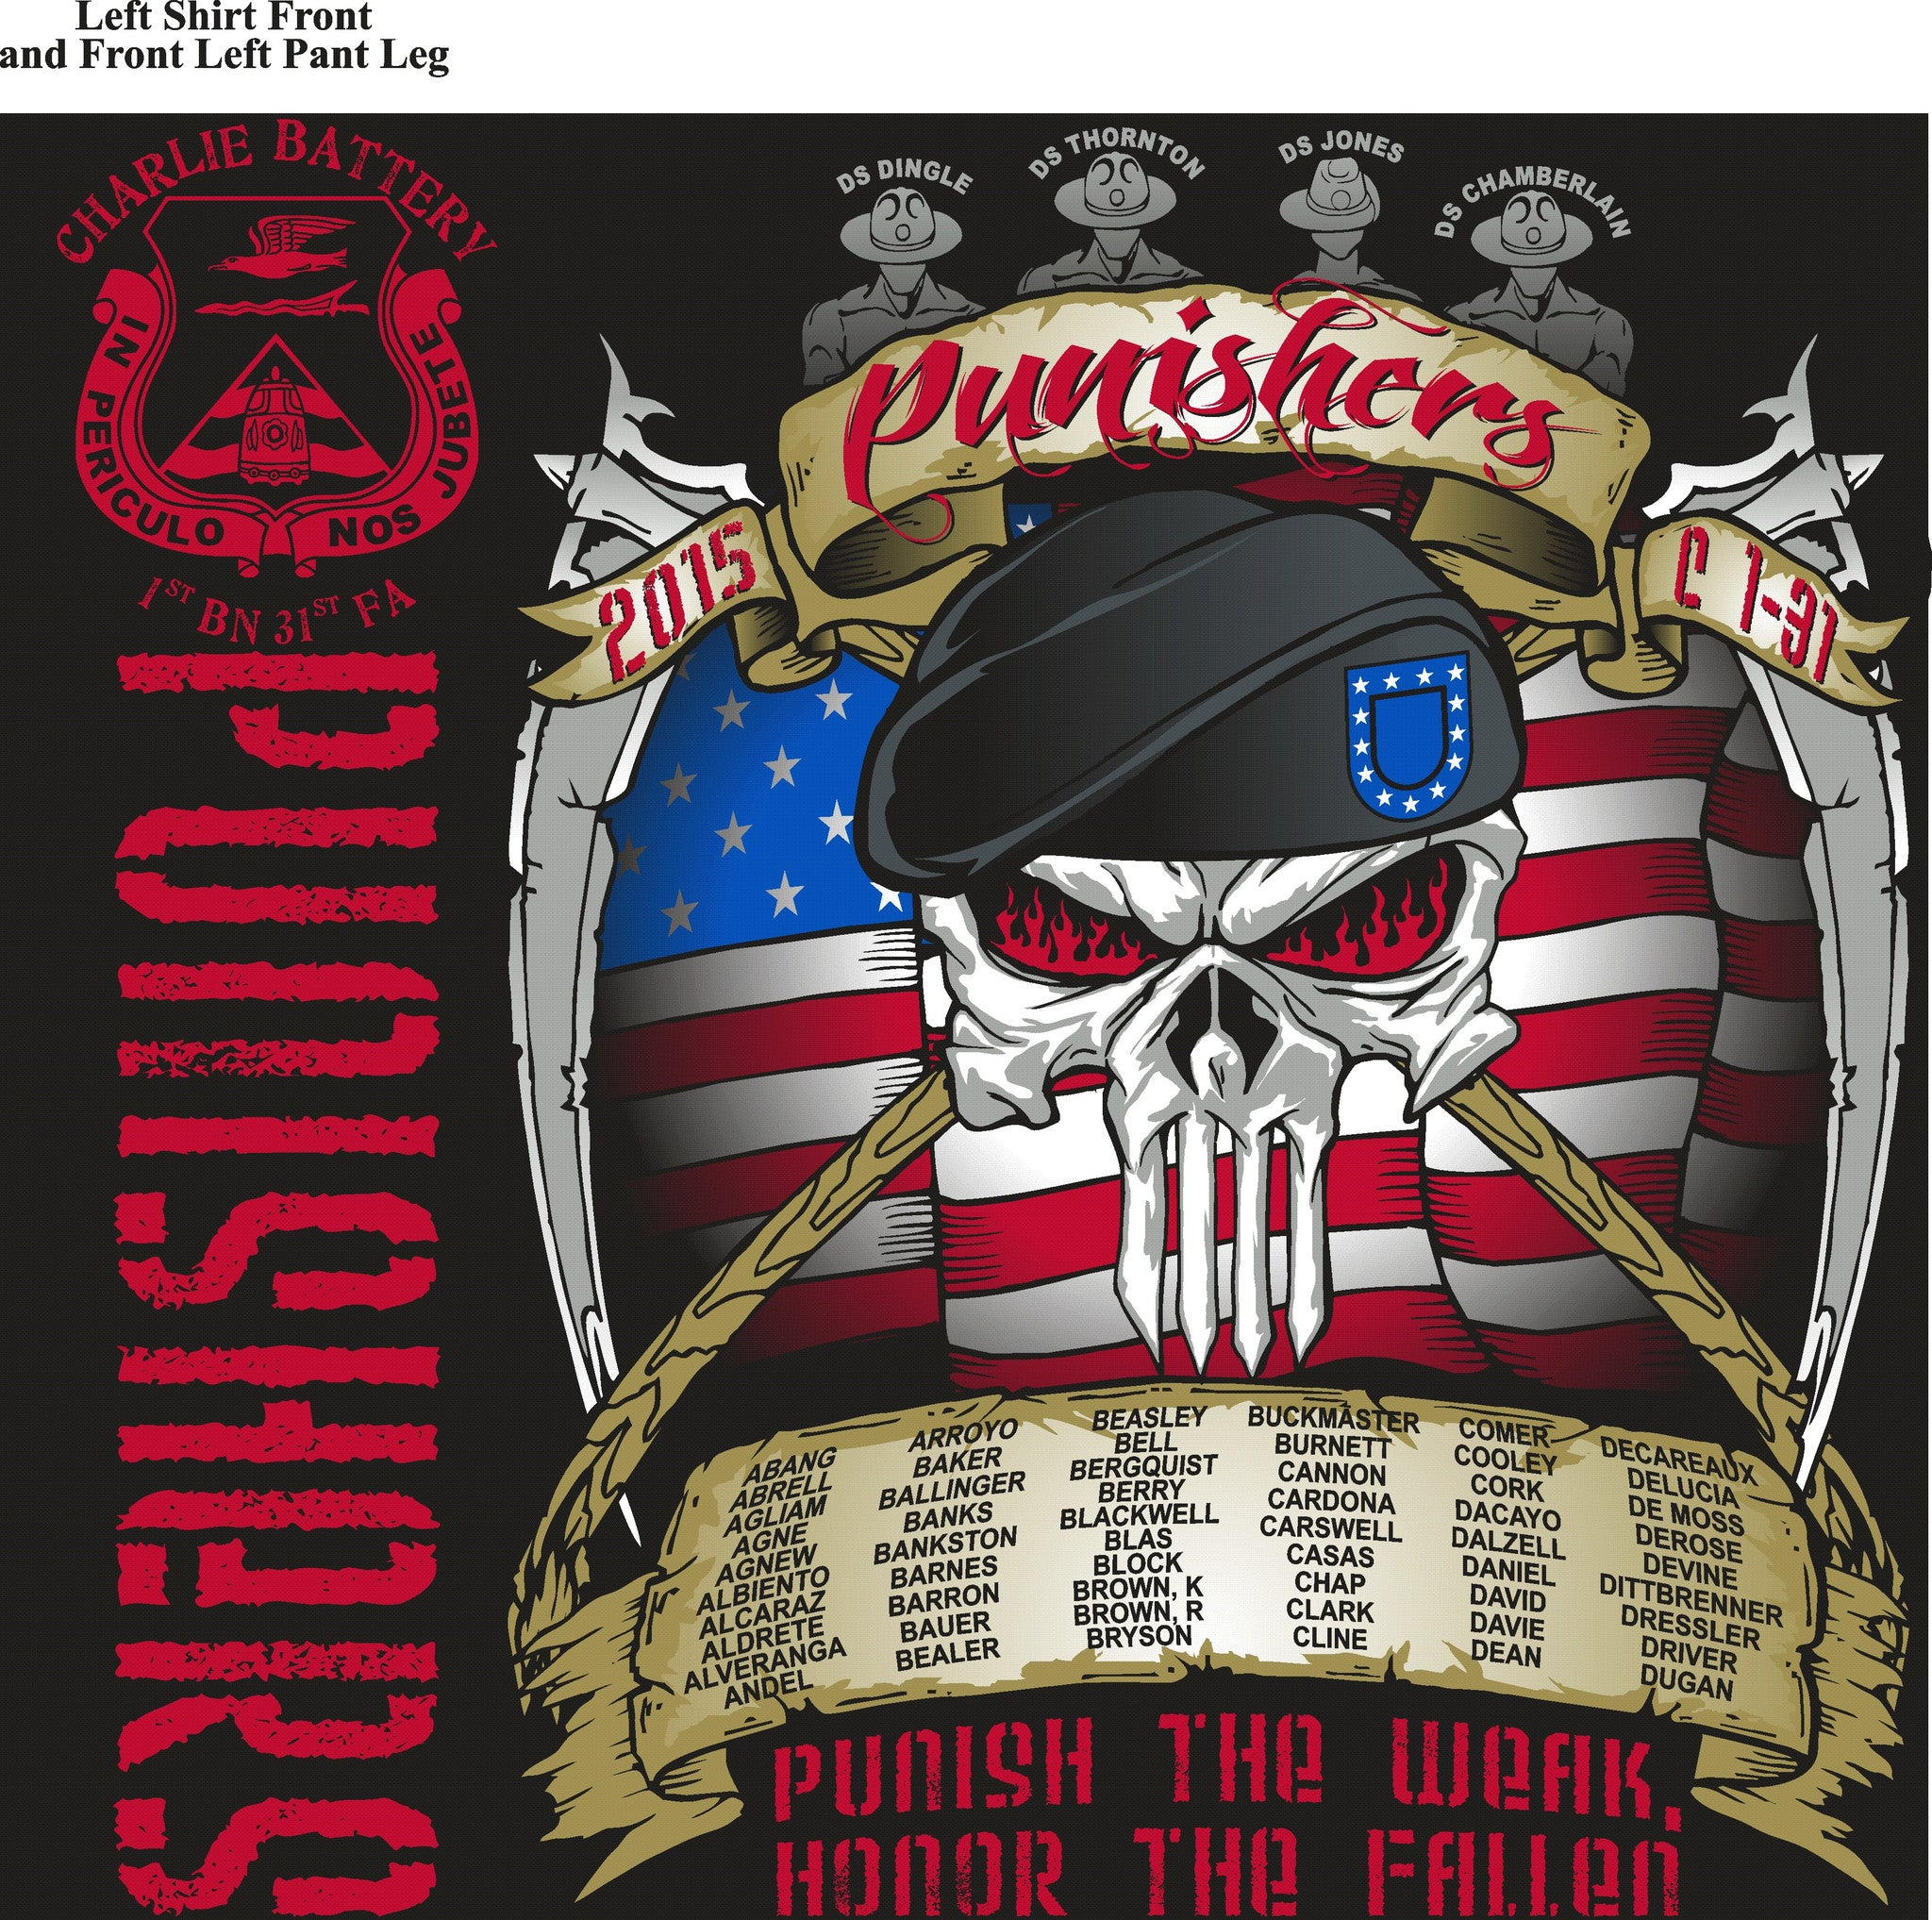 PLATOON SHIRTS (digital) CHARLE 1st 31st PUNISHERS OCT 2015